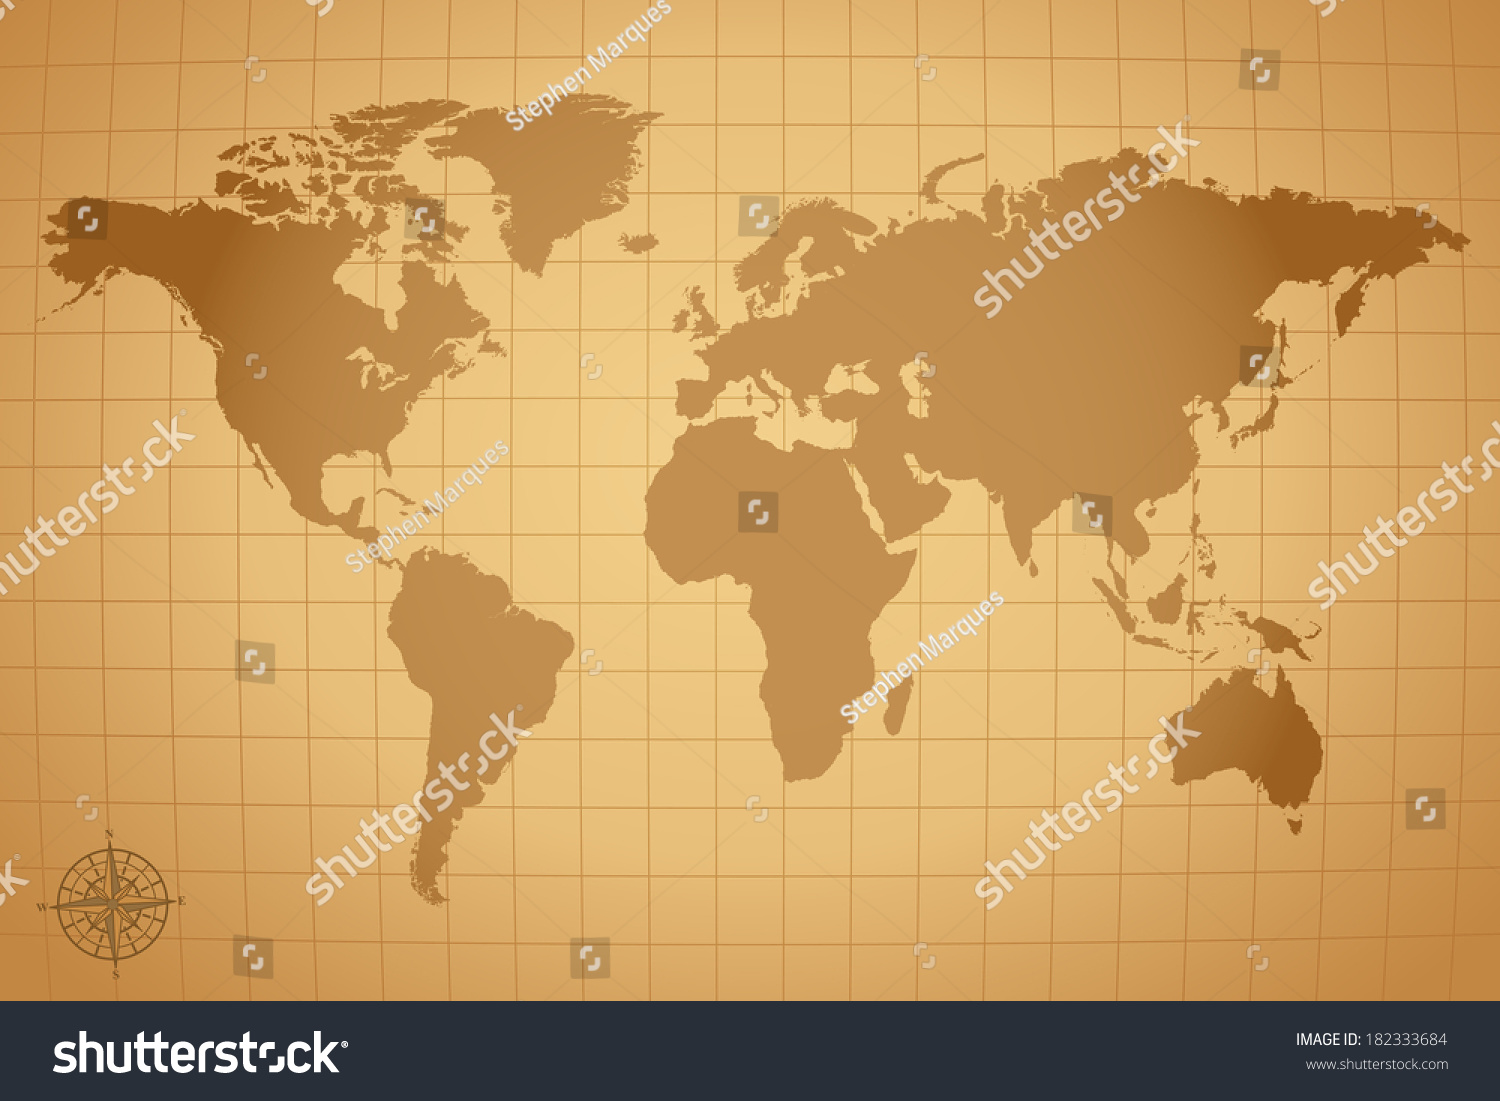 Vintage world map illustration eps vector stock illustration vintage world map illustration eps vector version also available in portfolio gumiabroncs Gallery